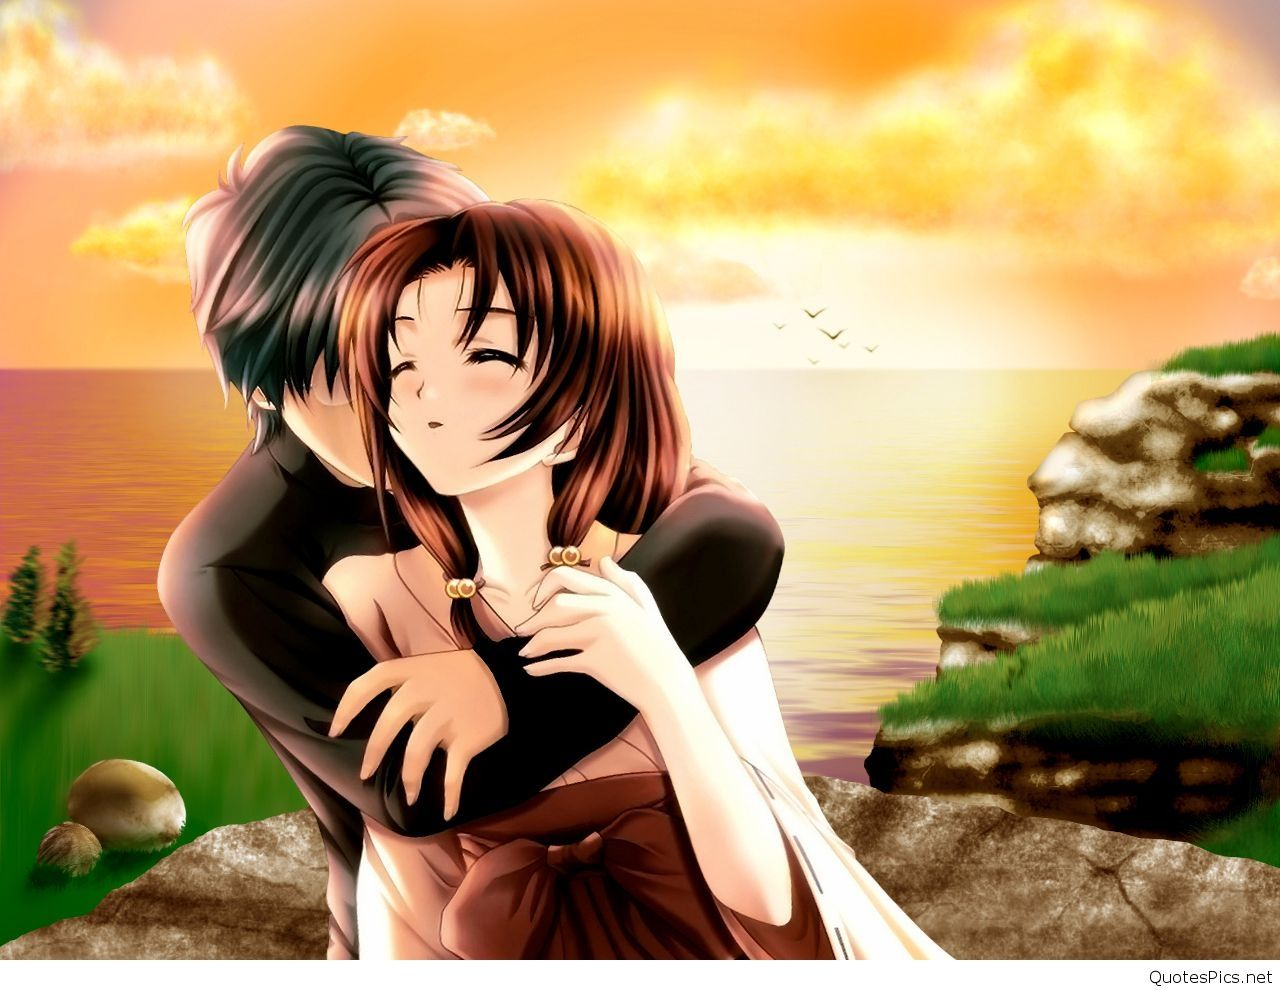 Images Of Love Couples Animated Hd Romantic Love Couple Cartoon